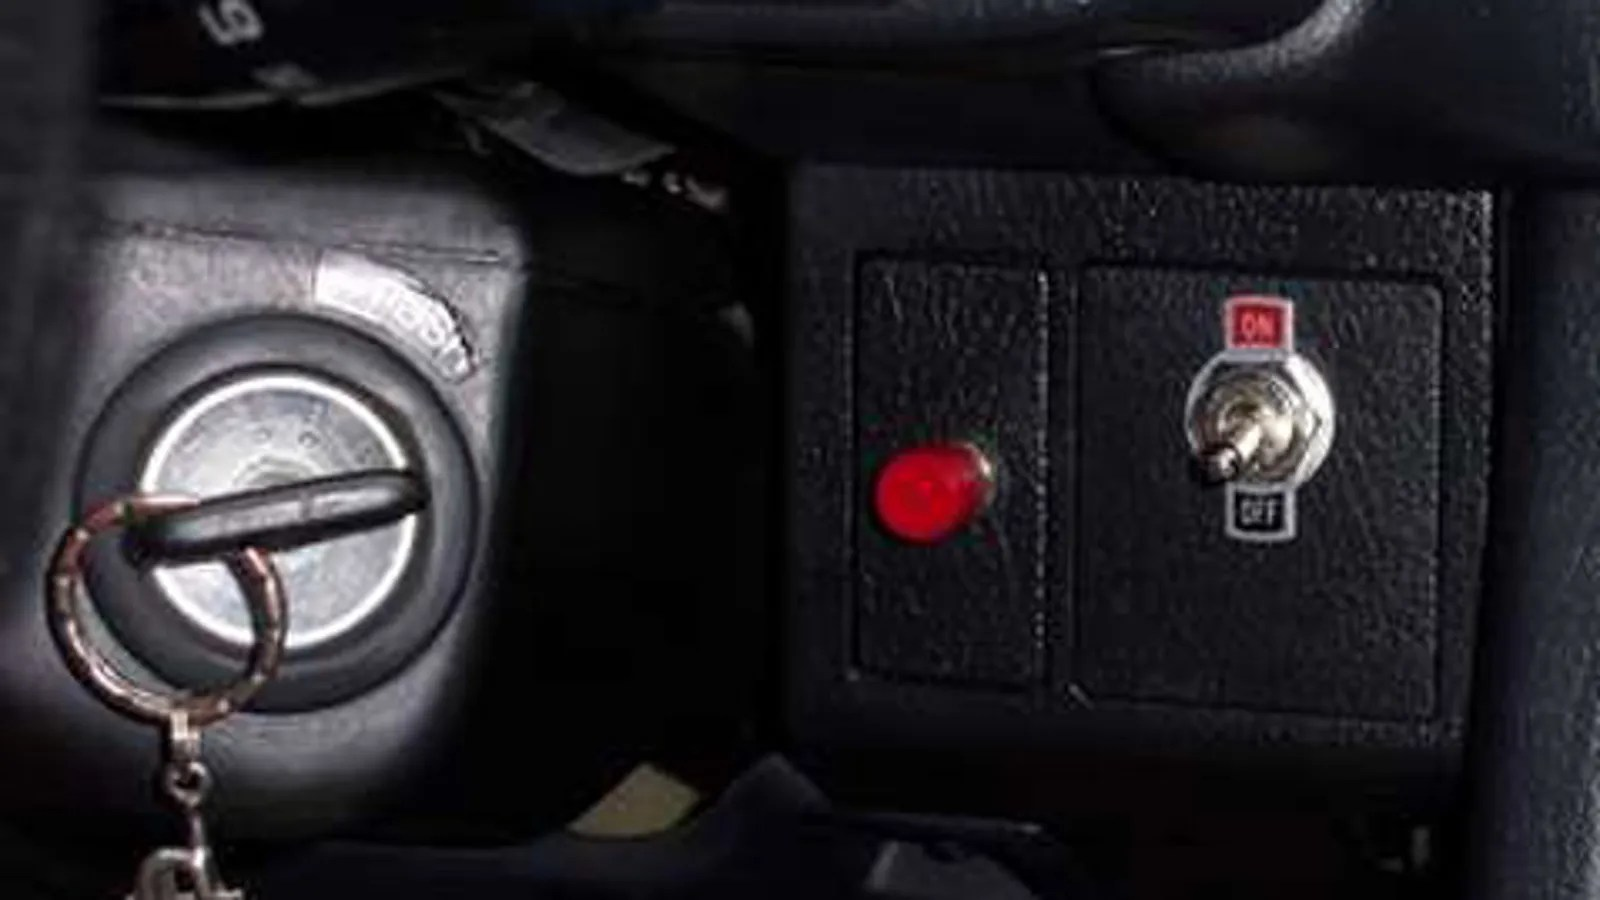 DIY Push Button Ignition And Engine Kill Switch